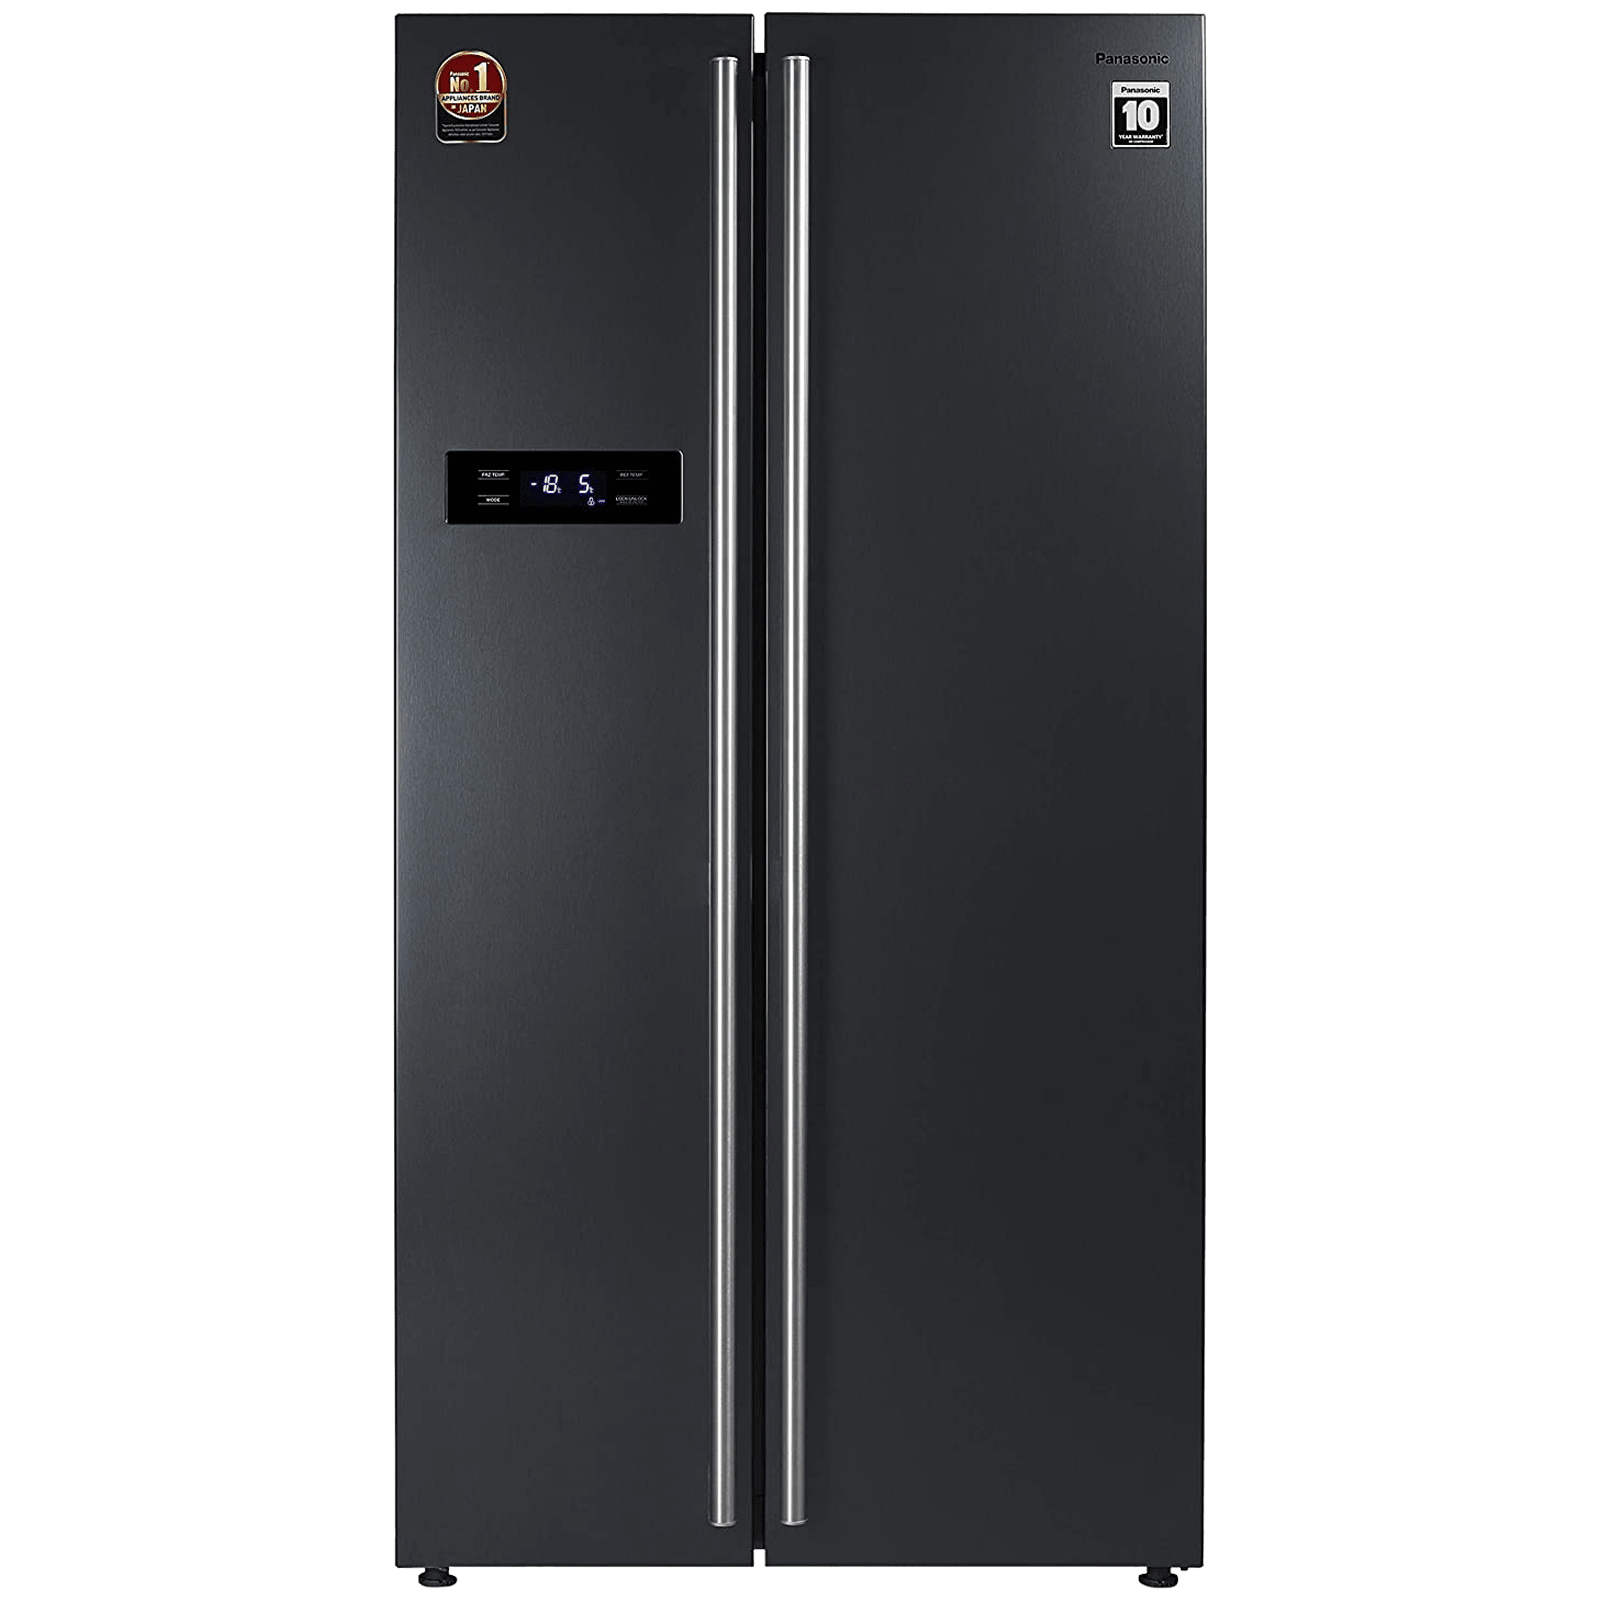 Panasonic 584 Litres Frost Free Inverter Side-by-Side Refrigerator (Quick Freeze Mode, NR-BS60VKX1, Dark Grey Steel)